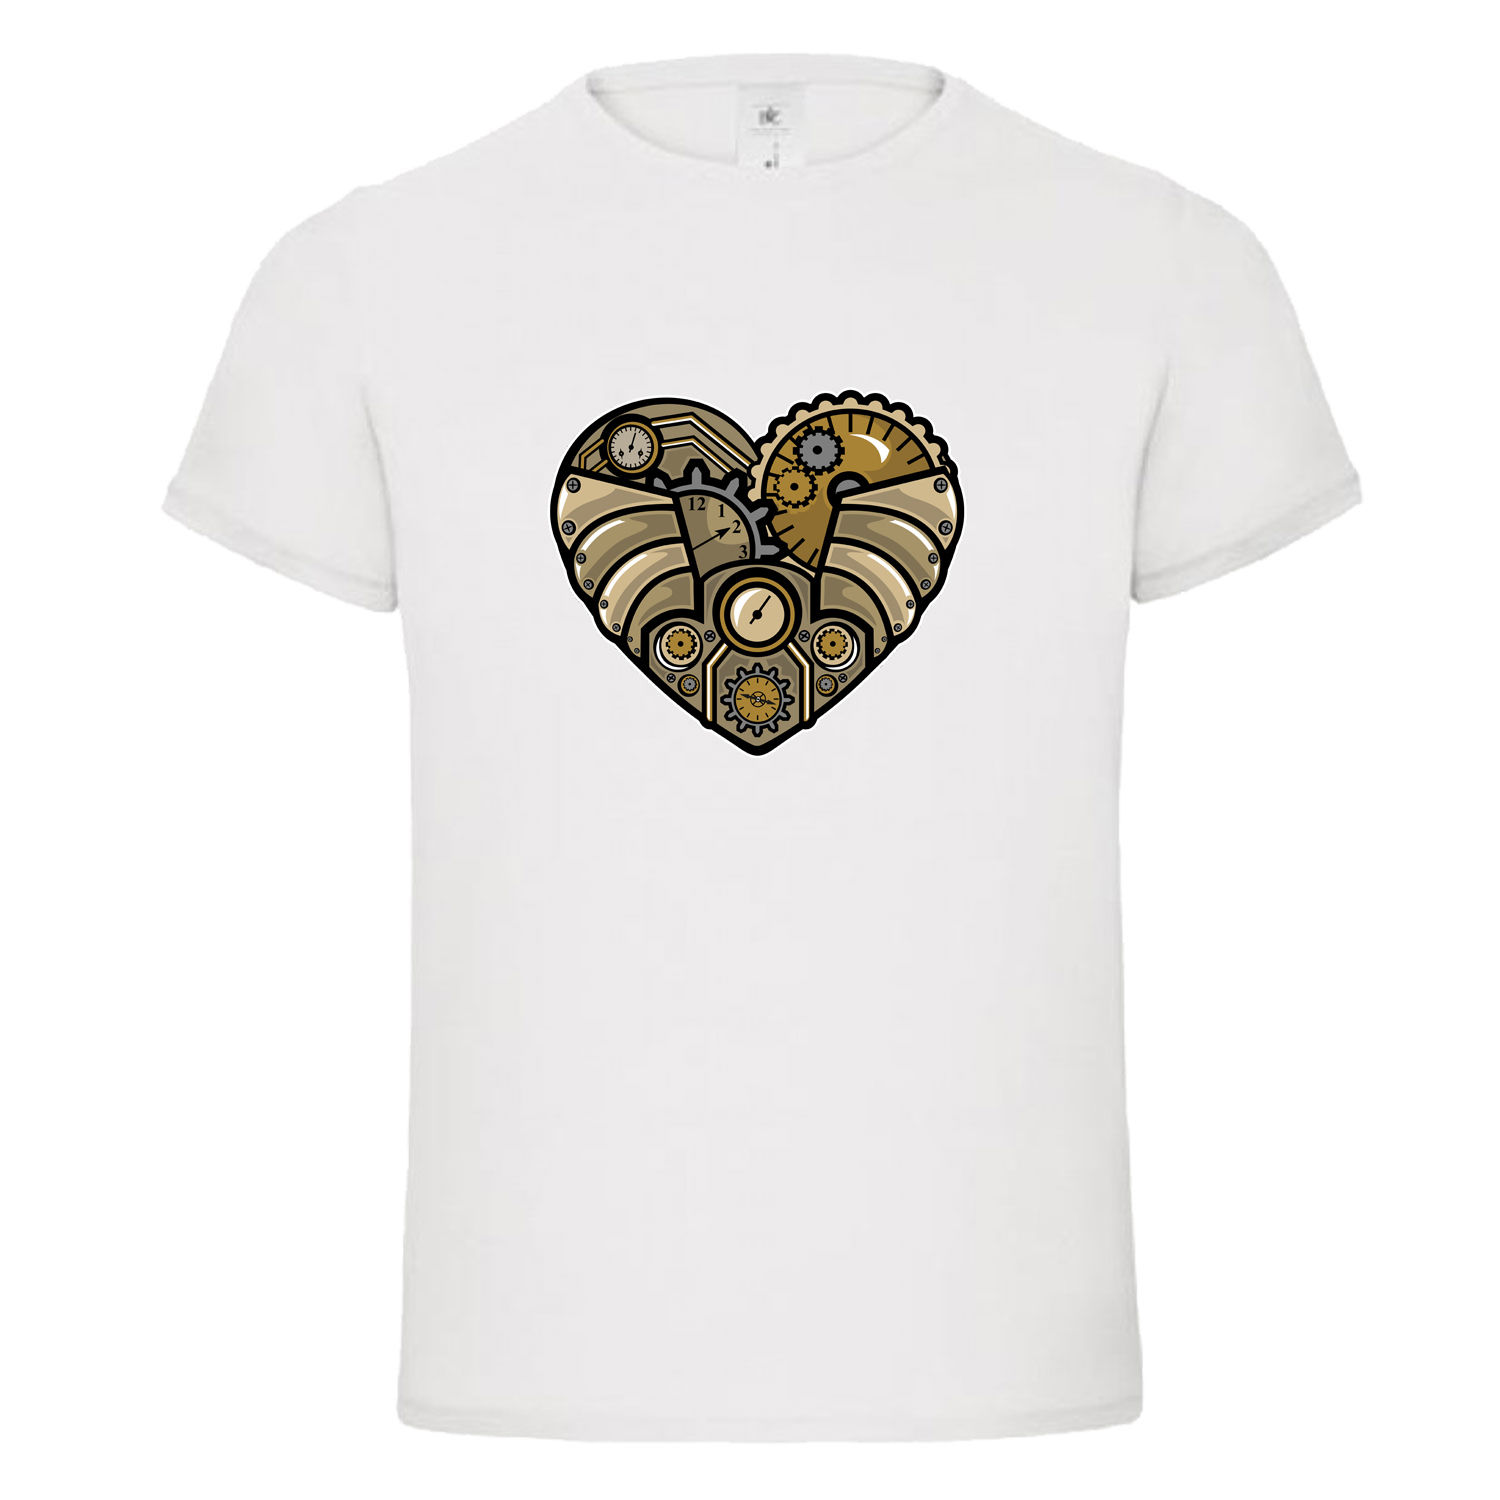 New T Shirts Funny Tops Tee New Unisex Funny TopsSTEAMPUNK HEART LOVE CLOCKWORK mashup dtg mens t shirt tees Summer Style in T Shirts from Men 39 s Clothing